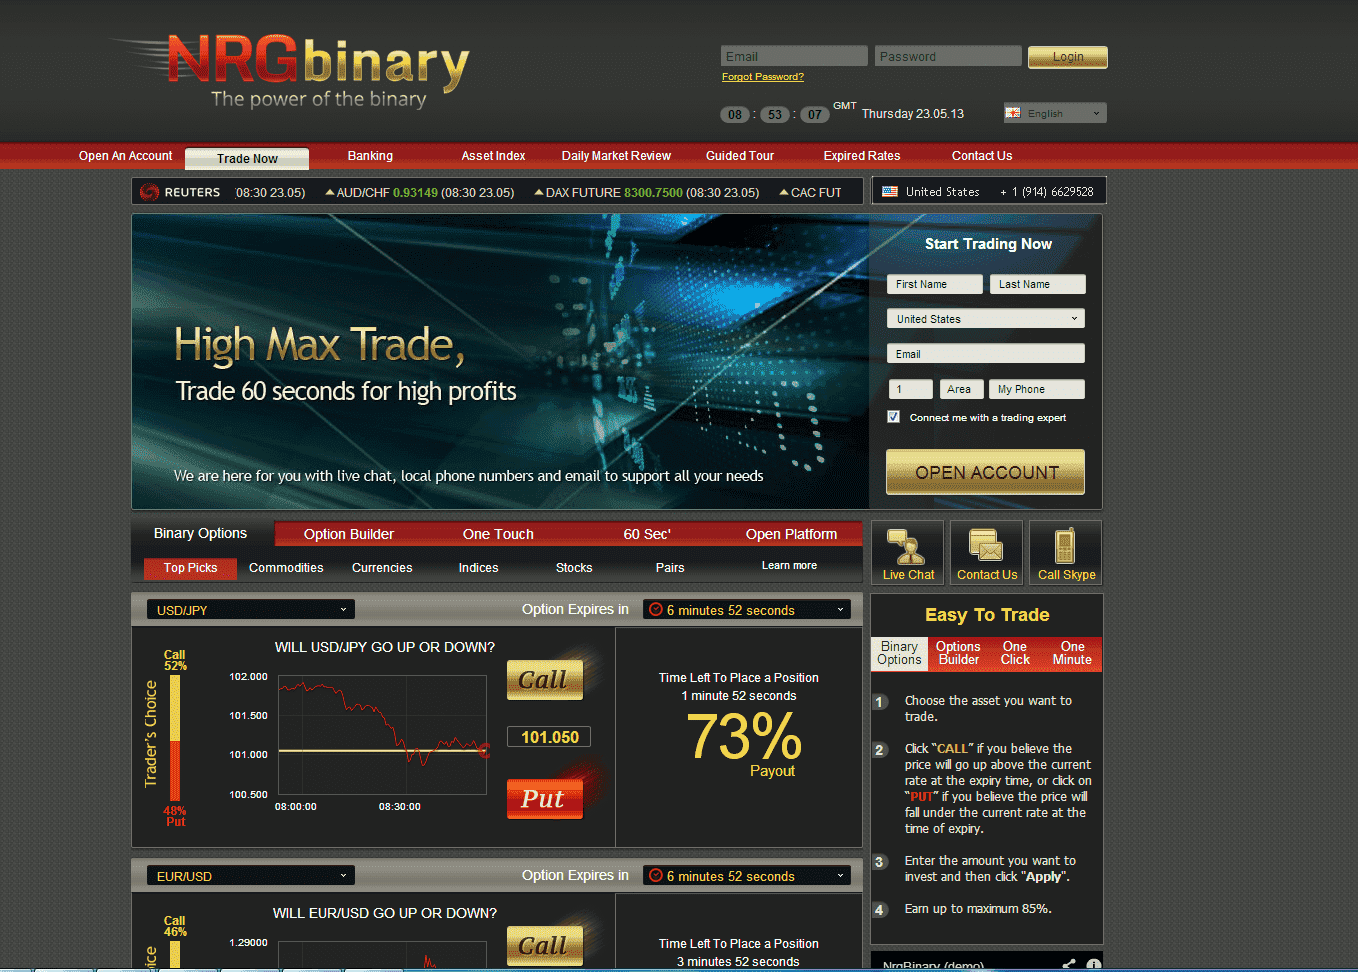 nrg binary options reviews